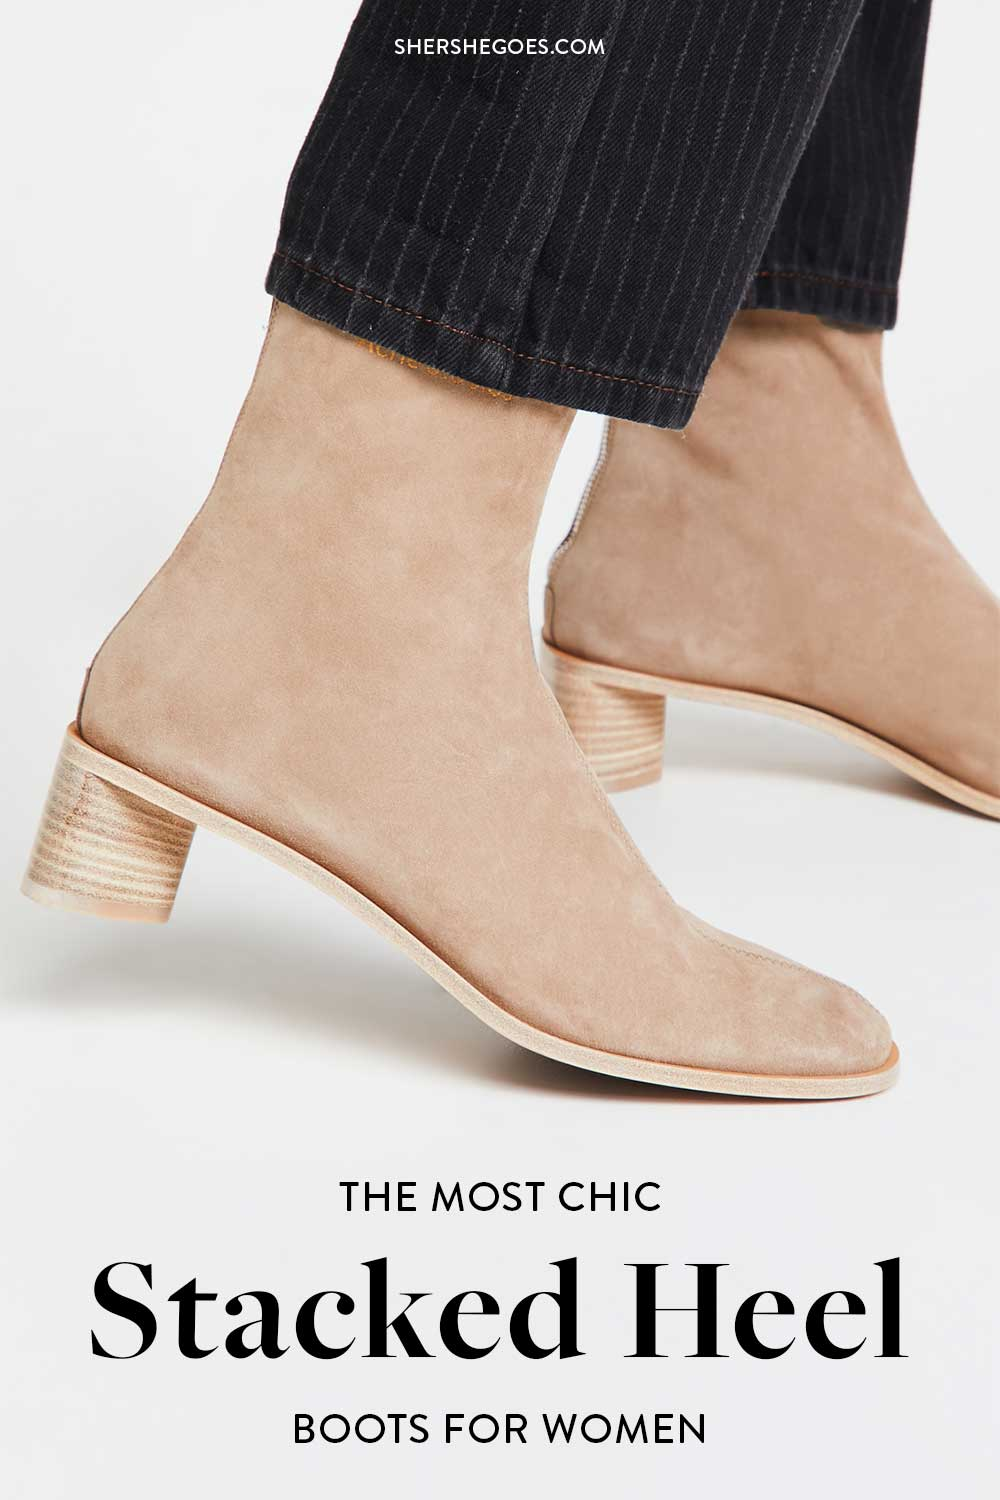 stacked-heel-ankle-boots